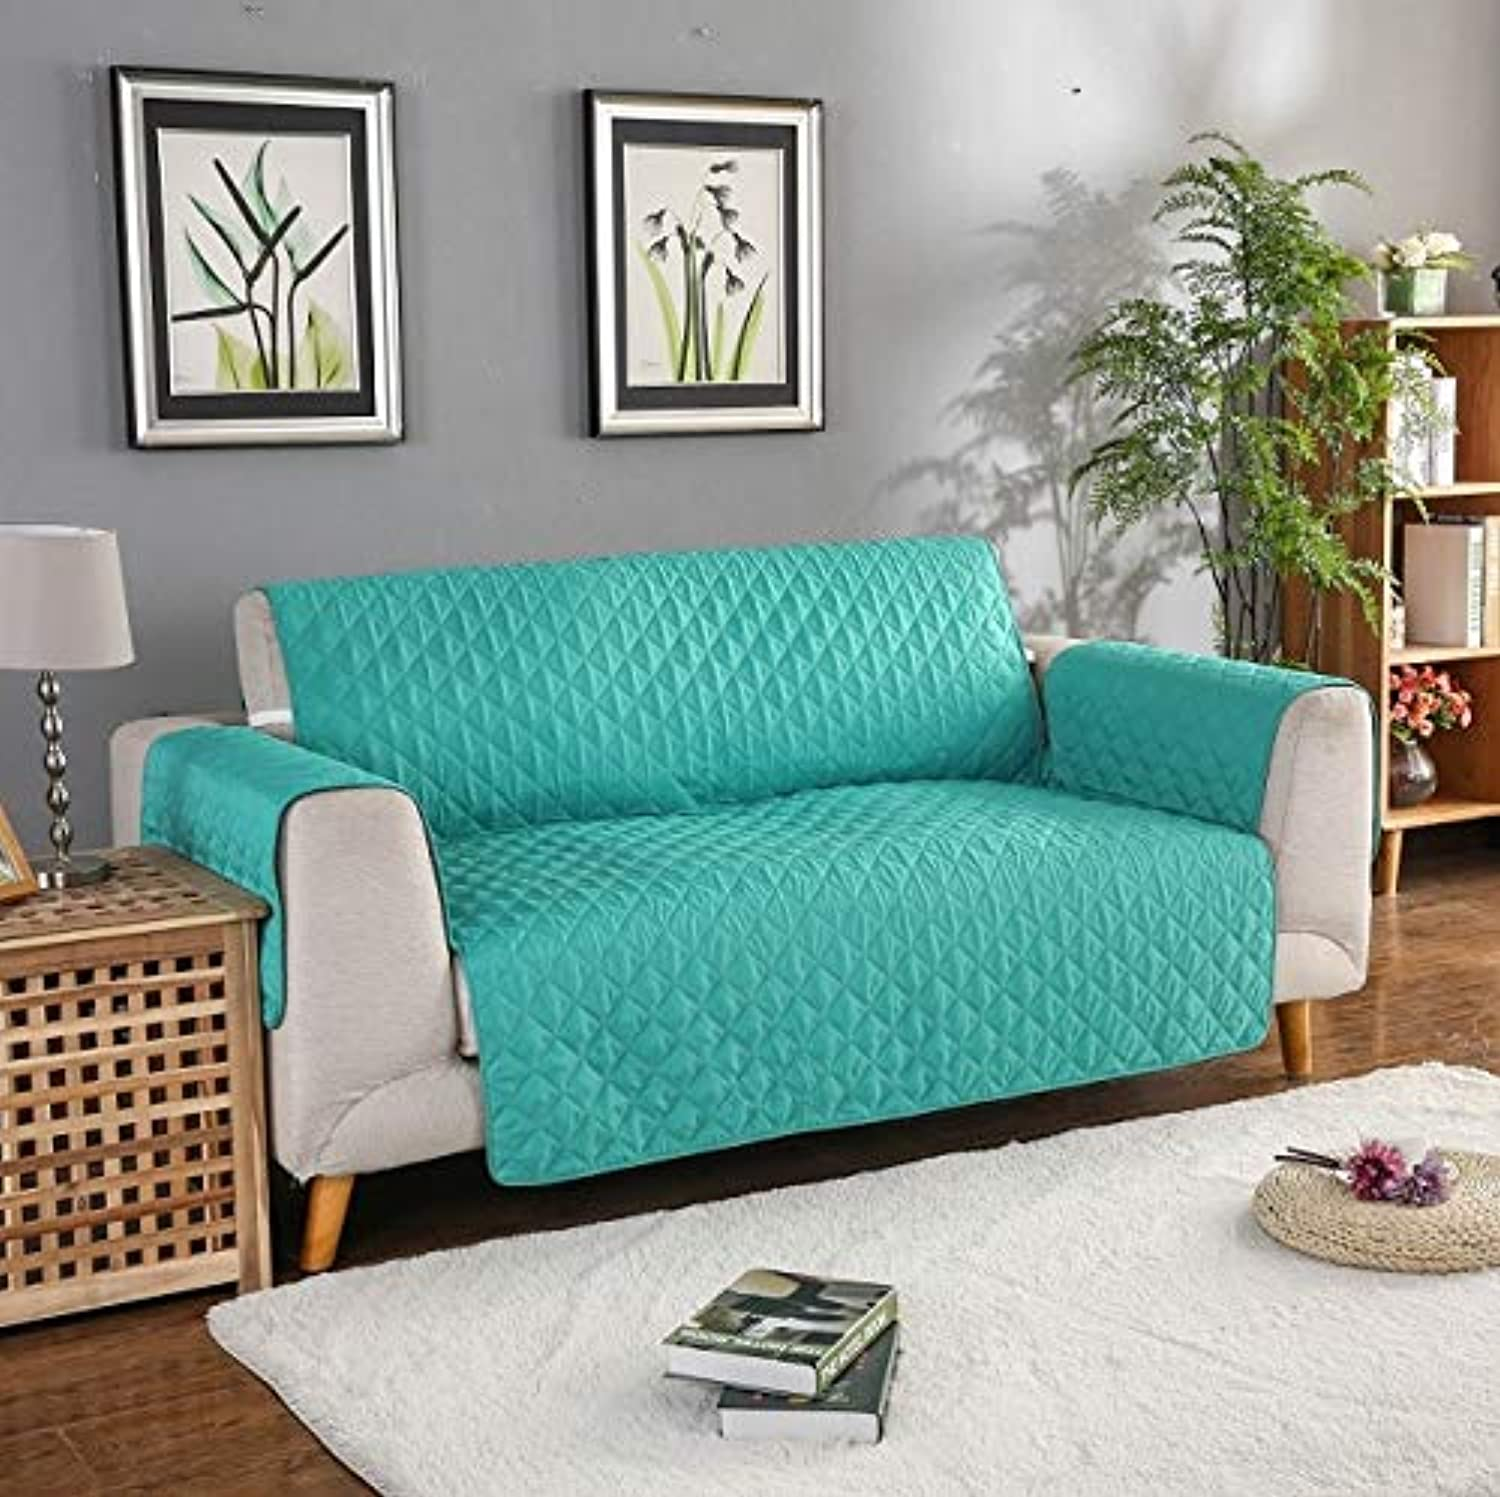 Sofa Cover for Living Room Cheap Corner Slipcovers Set Polyester Stretch Furniture Sectional Couch Cubierta Fabric Sofa Towels   Green, Single Seat